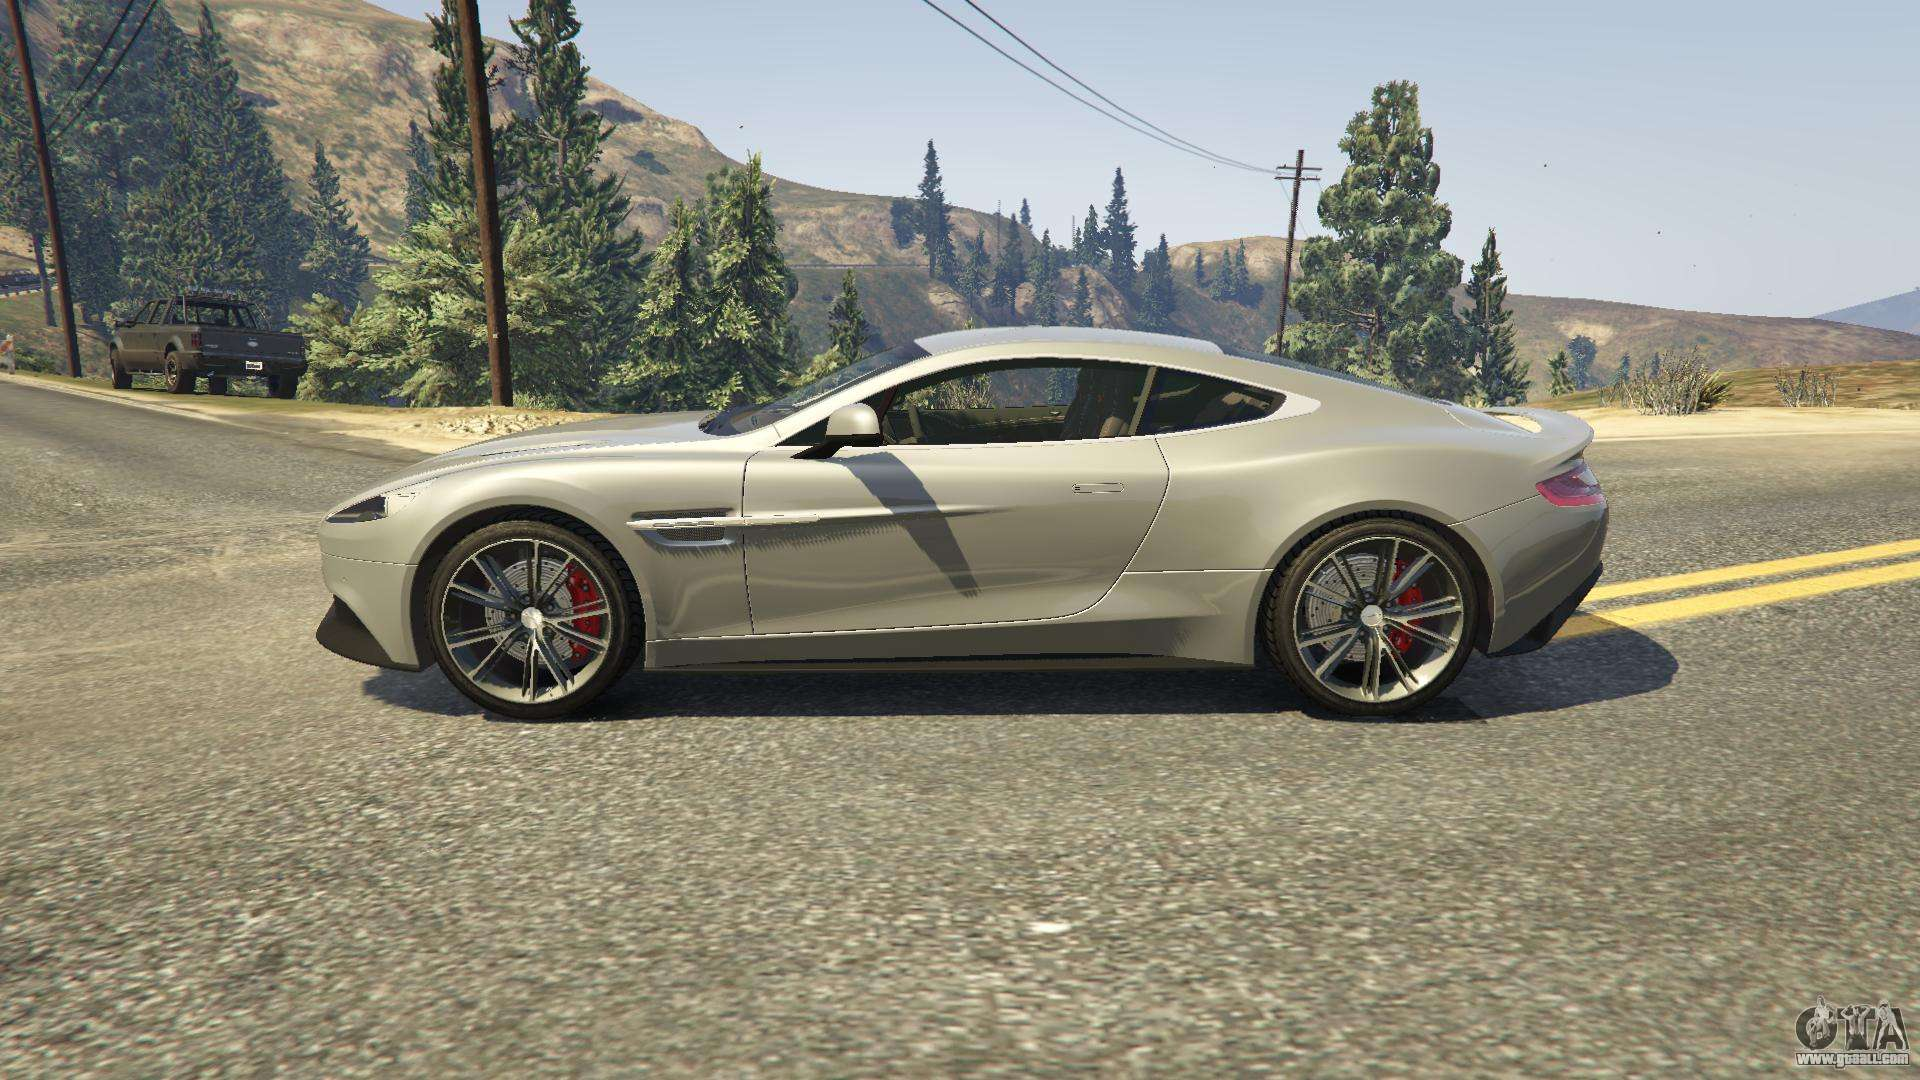 73120 Peugeot Rcz together with 67102 Subaru Impreza Wrx Sti 2005 moreover 75767 M103 additionally 76875 Pagani Zonda R likewise 74096 Ferrari F1. on the liberator gta 5